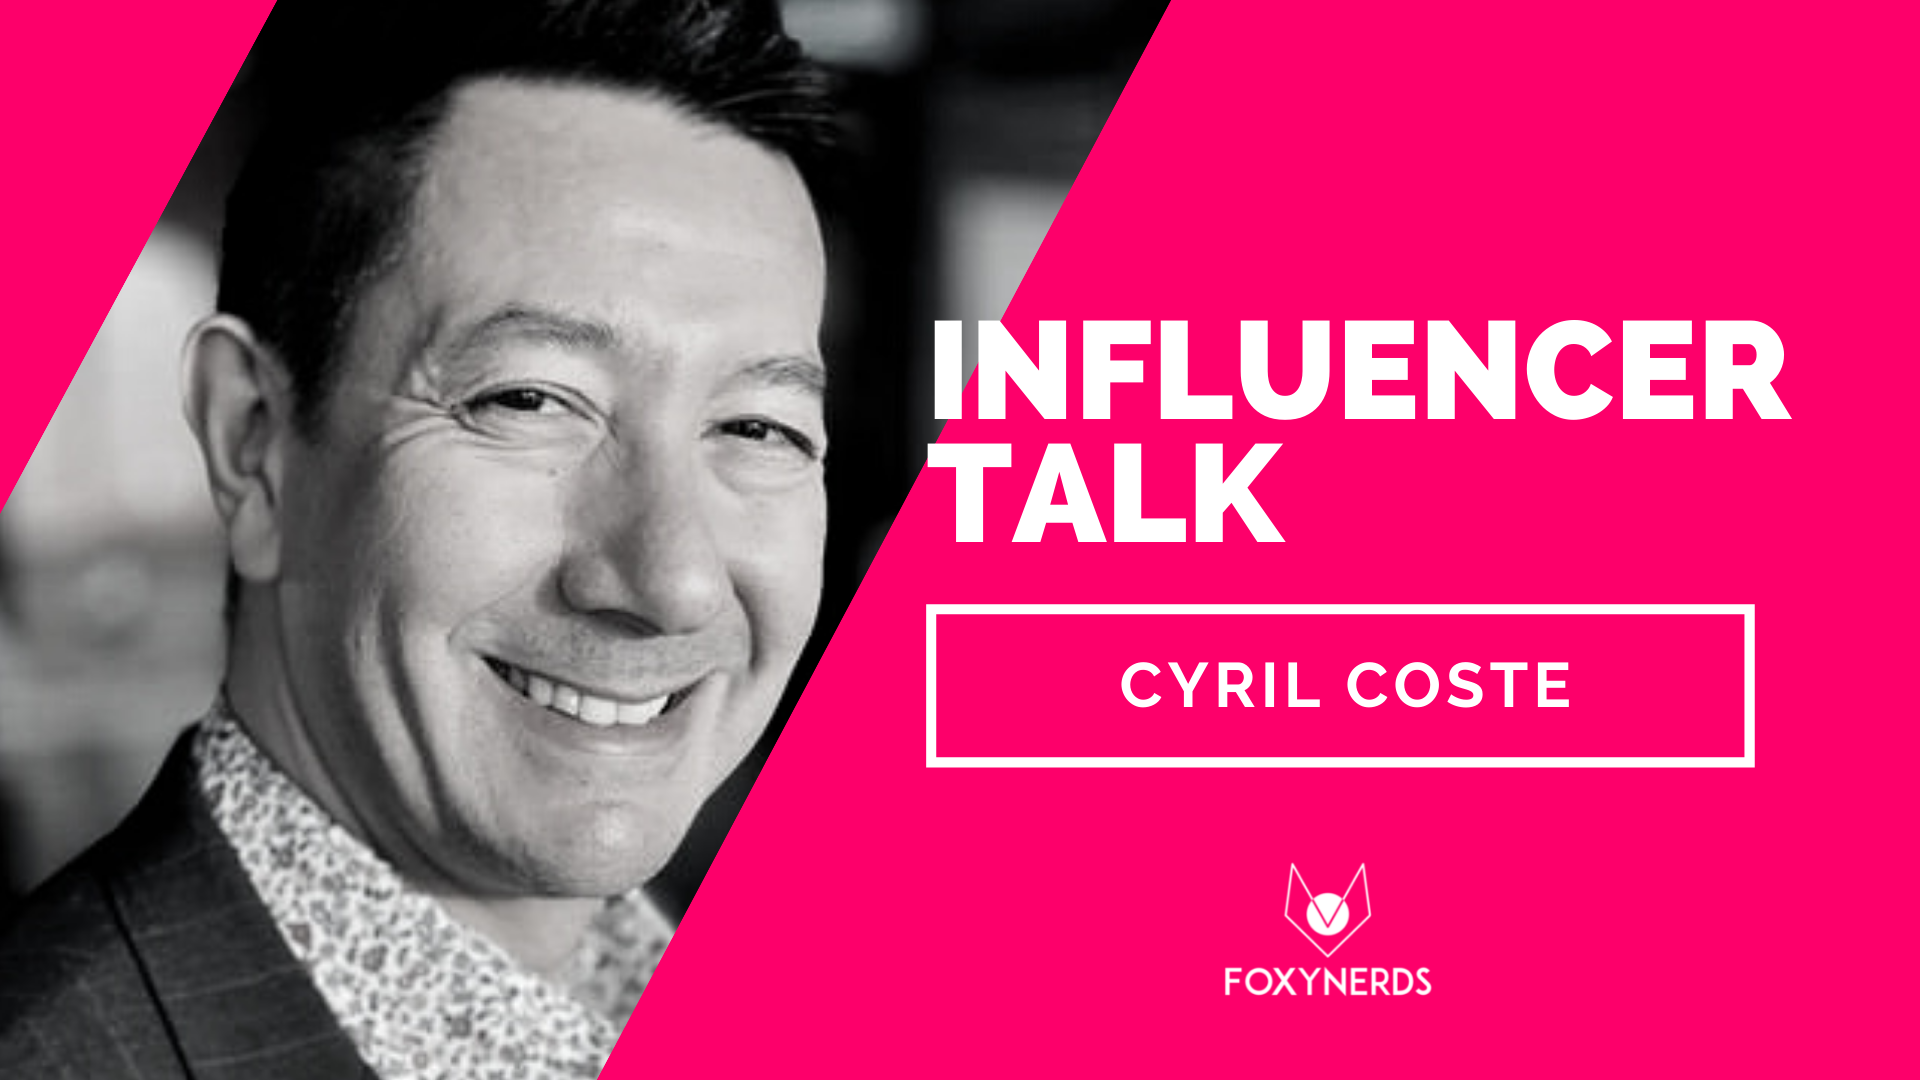 Influencer Talk: Cyril Coste